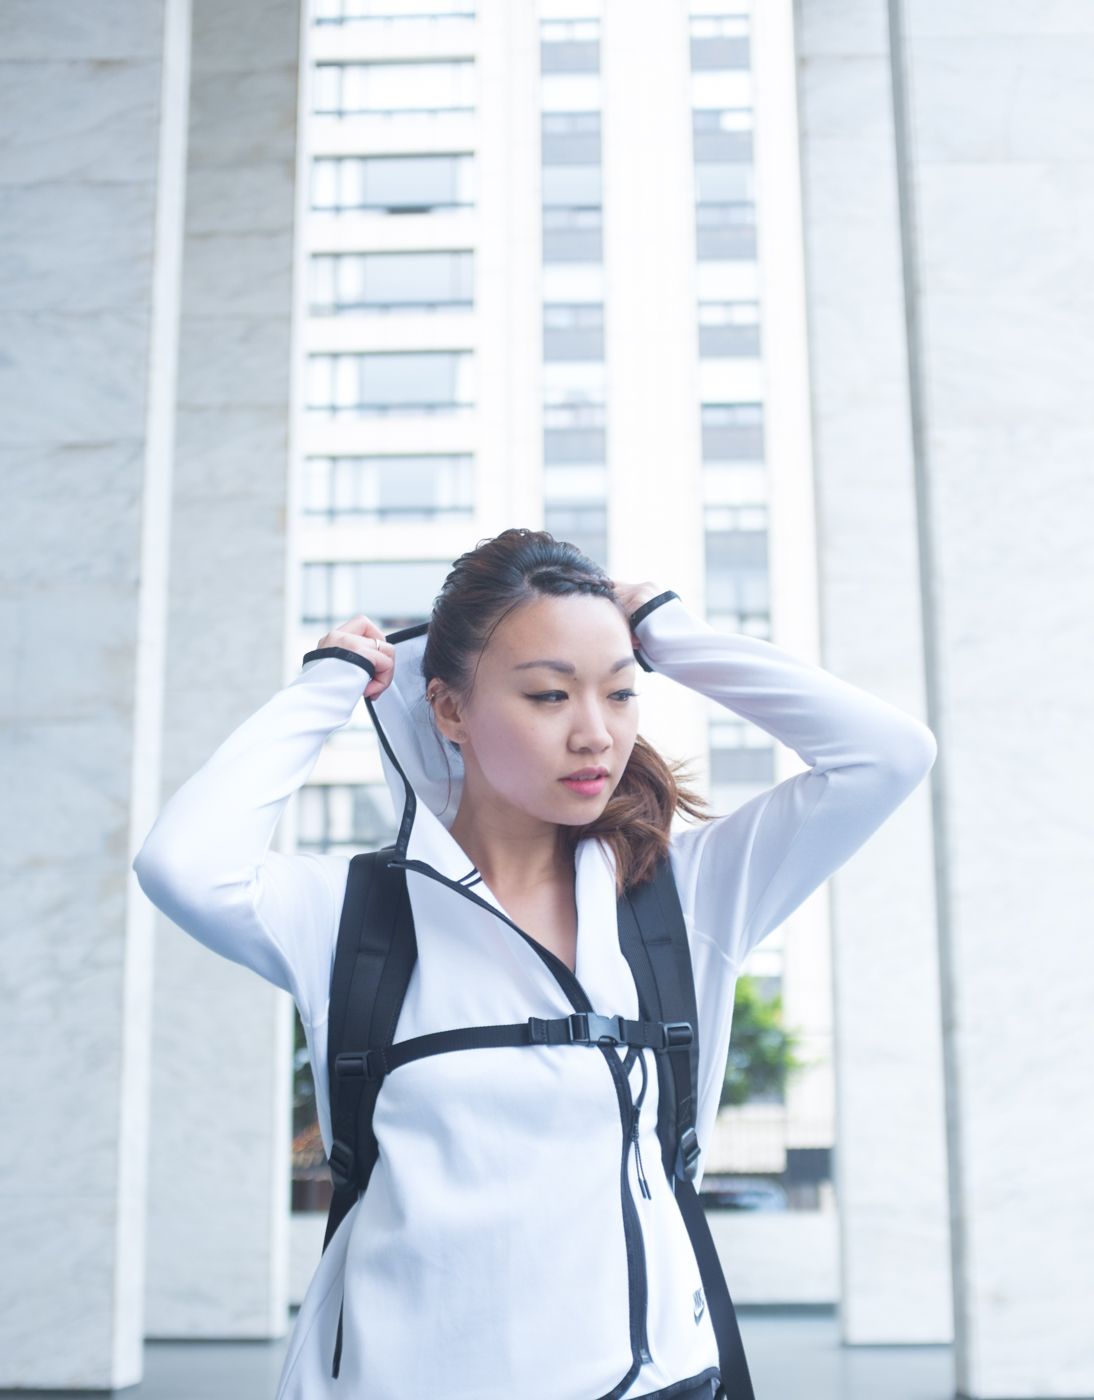 Aer Duffel Pack - carry your gym bag like a backpack! | via The Chic Diary